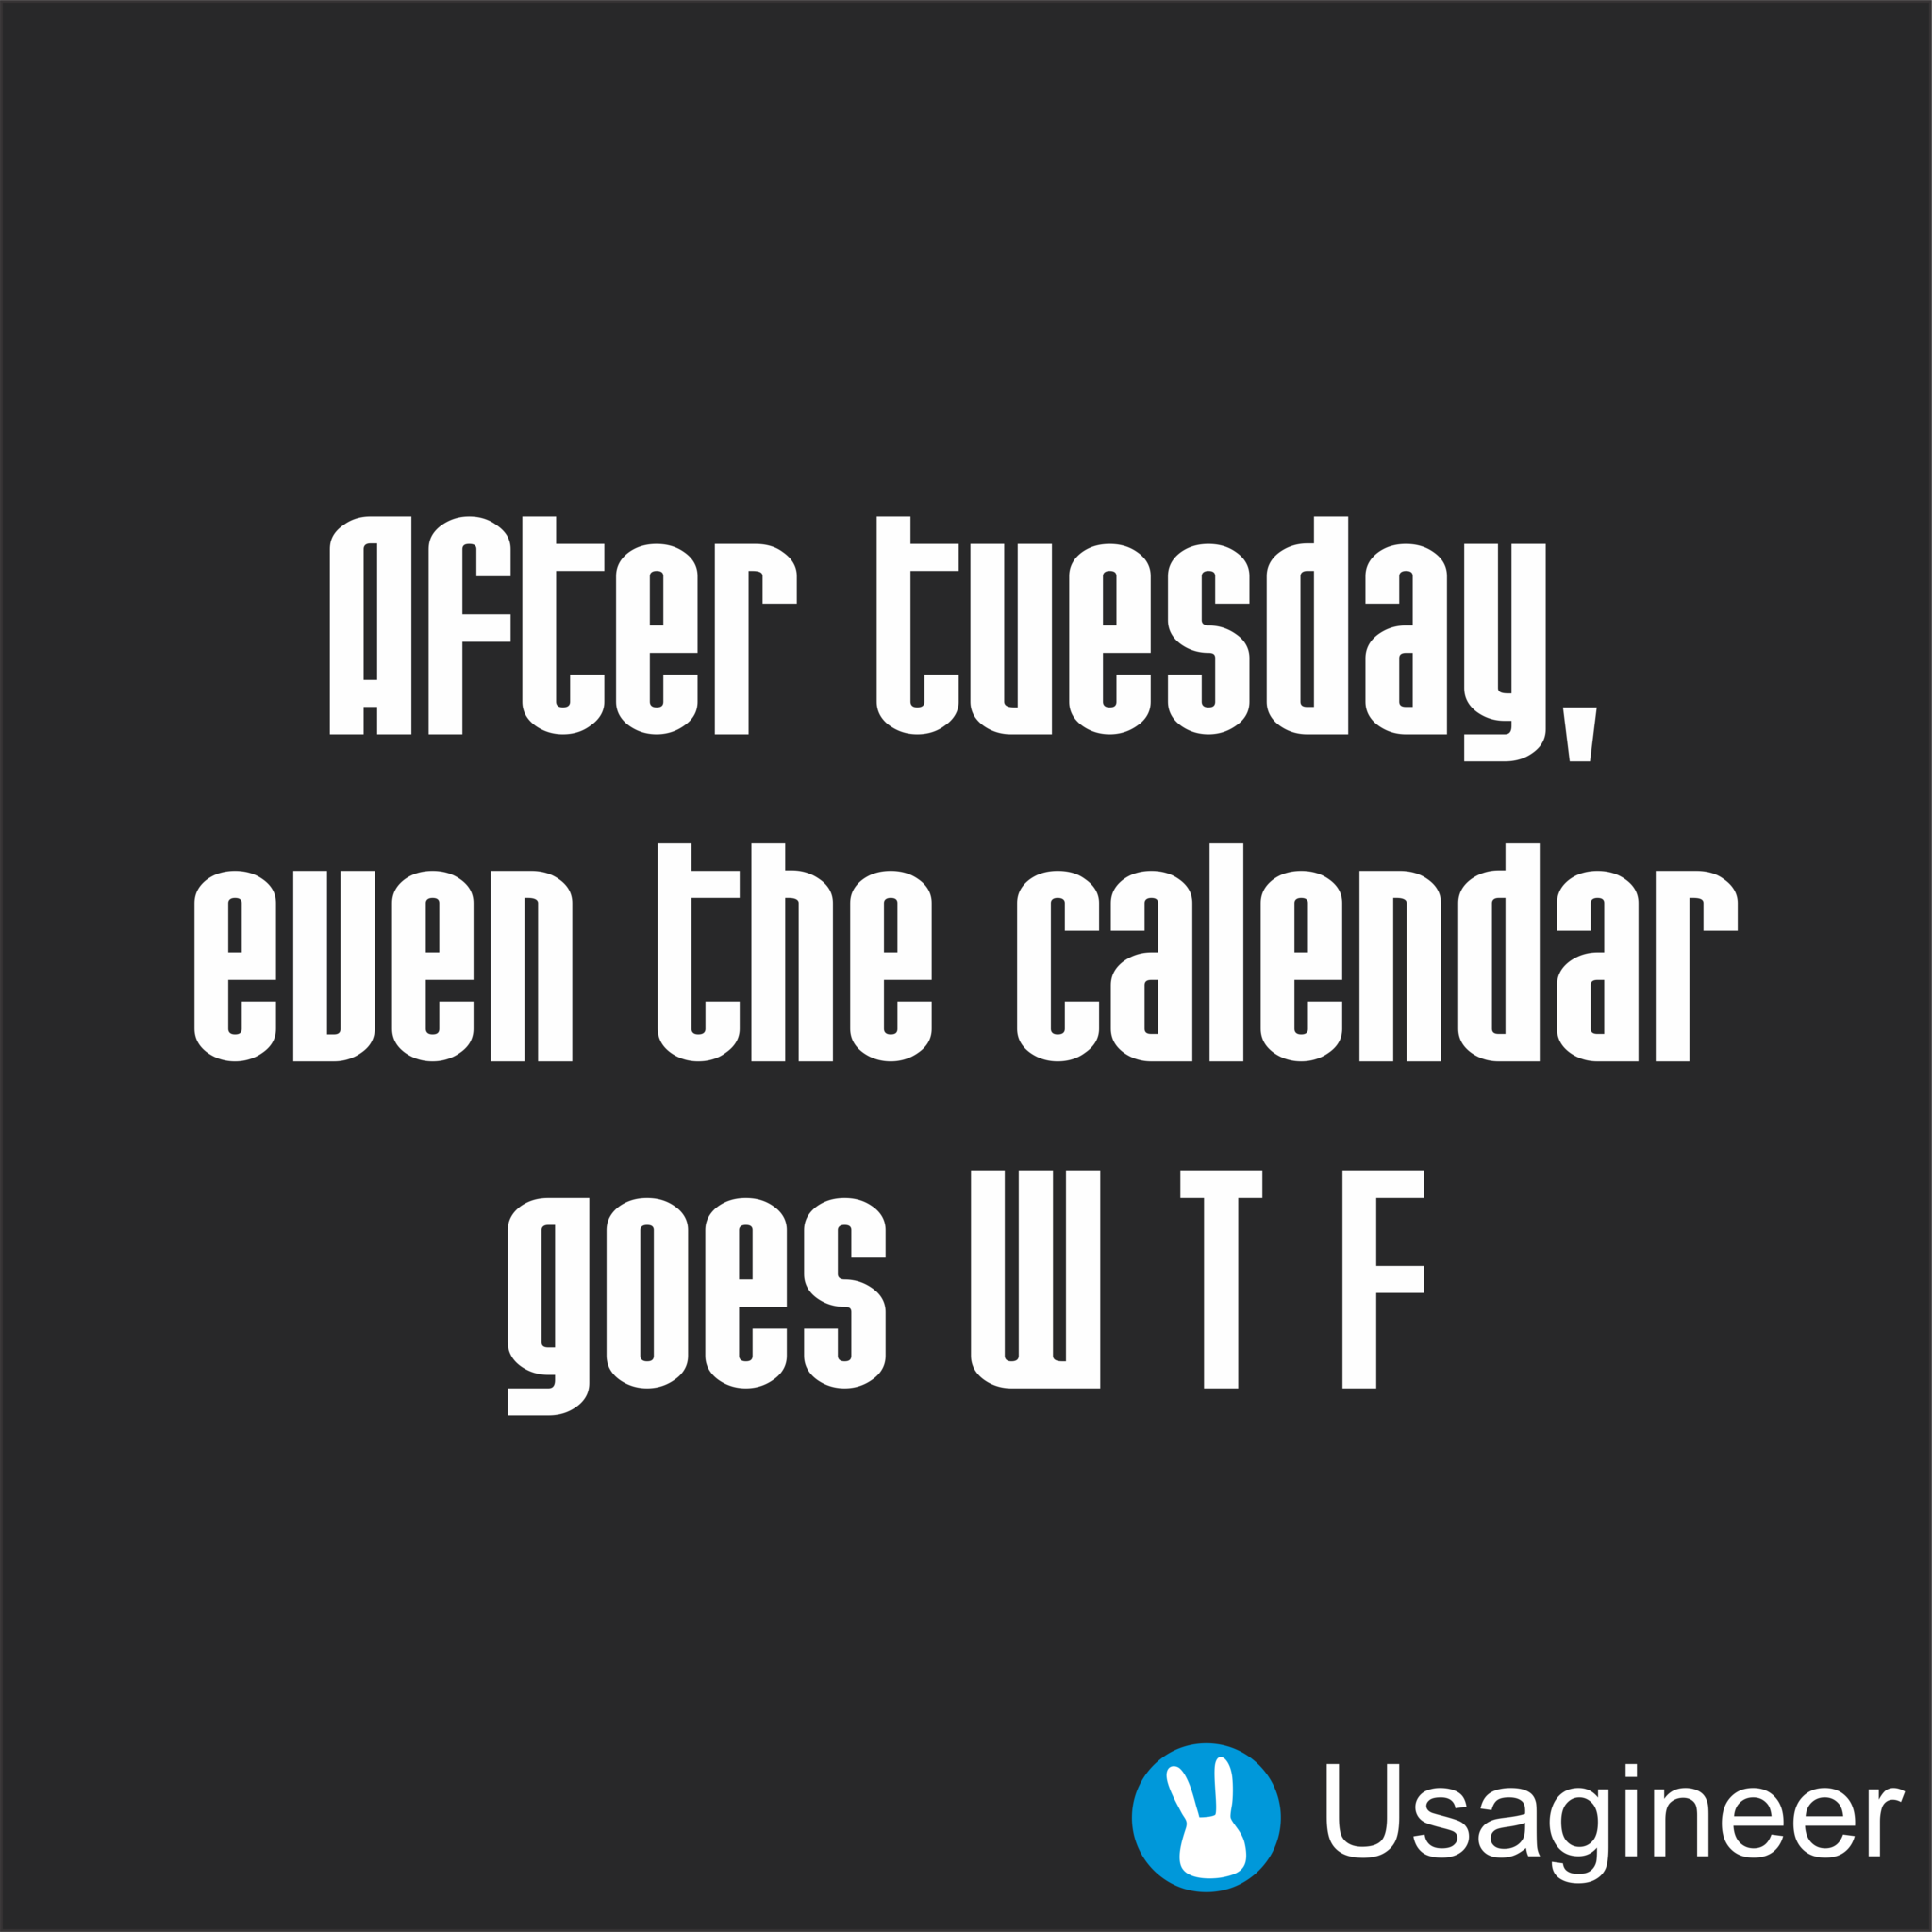 After tuesday even the calendar goes w t f quote decal sticker haha funny funny stuff